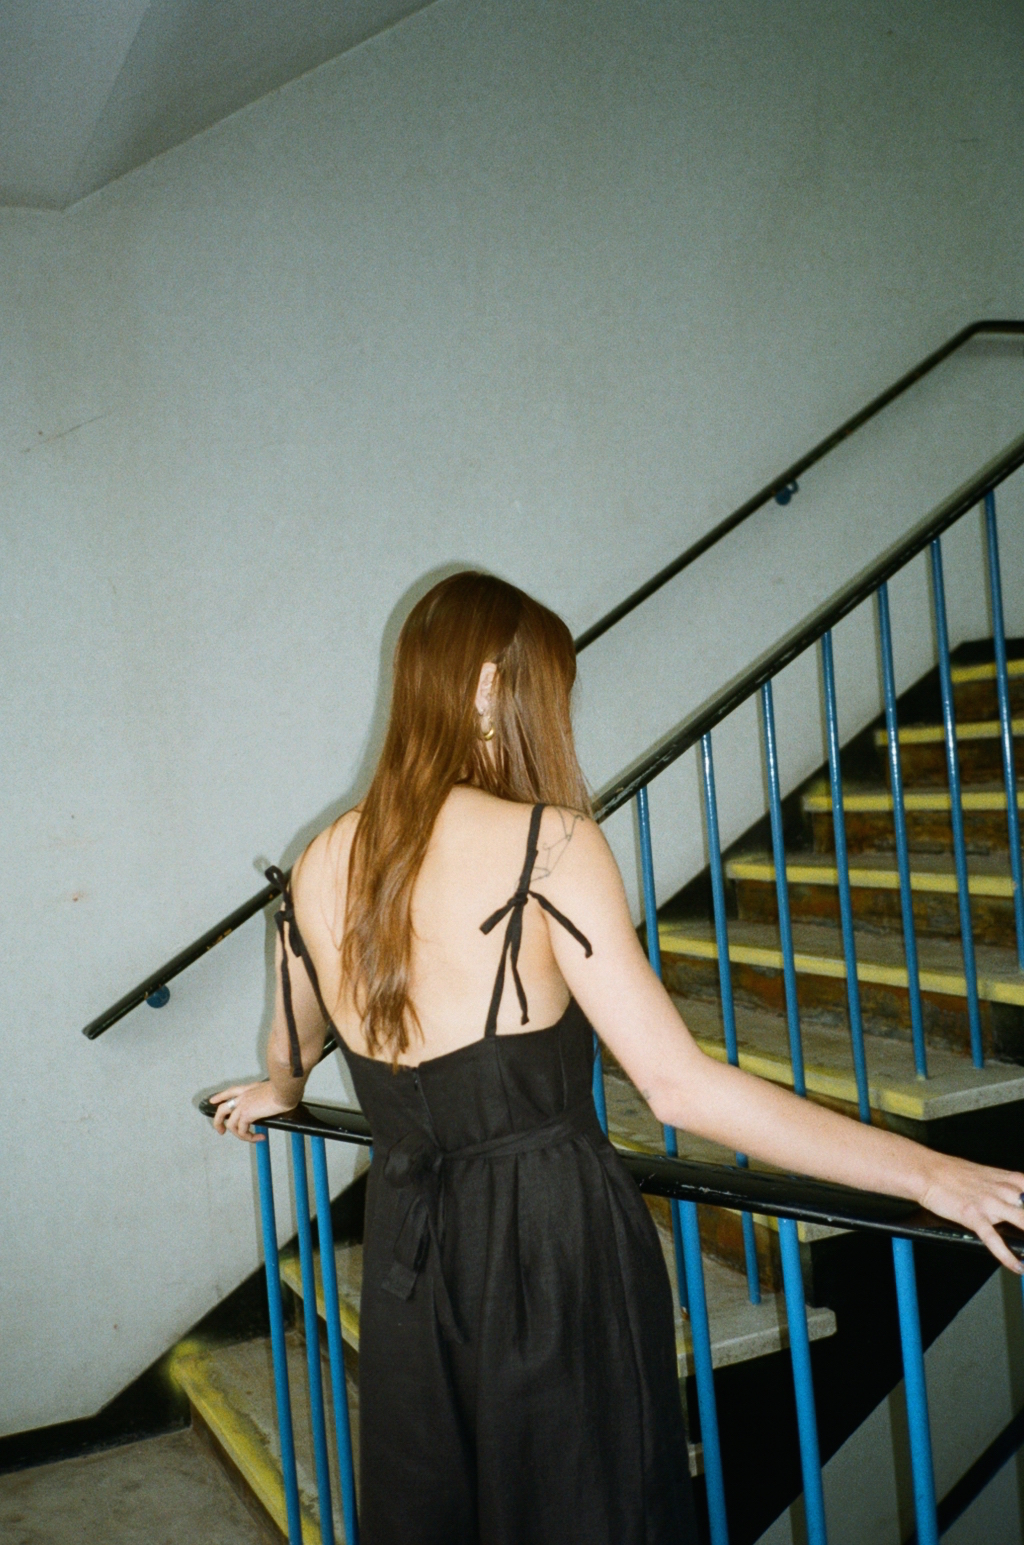 Photograph by Sarah Bates for Bug Clothing.